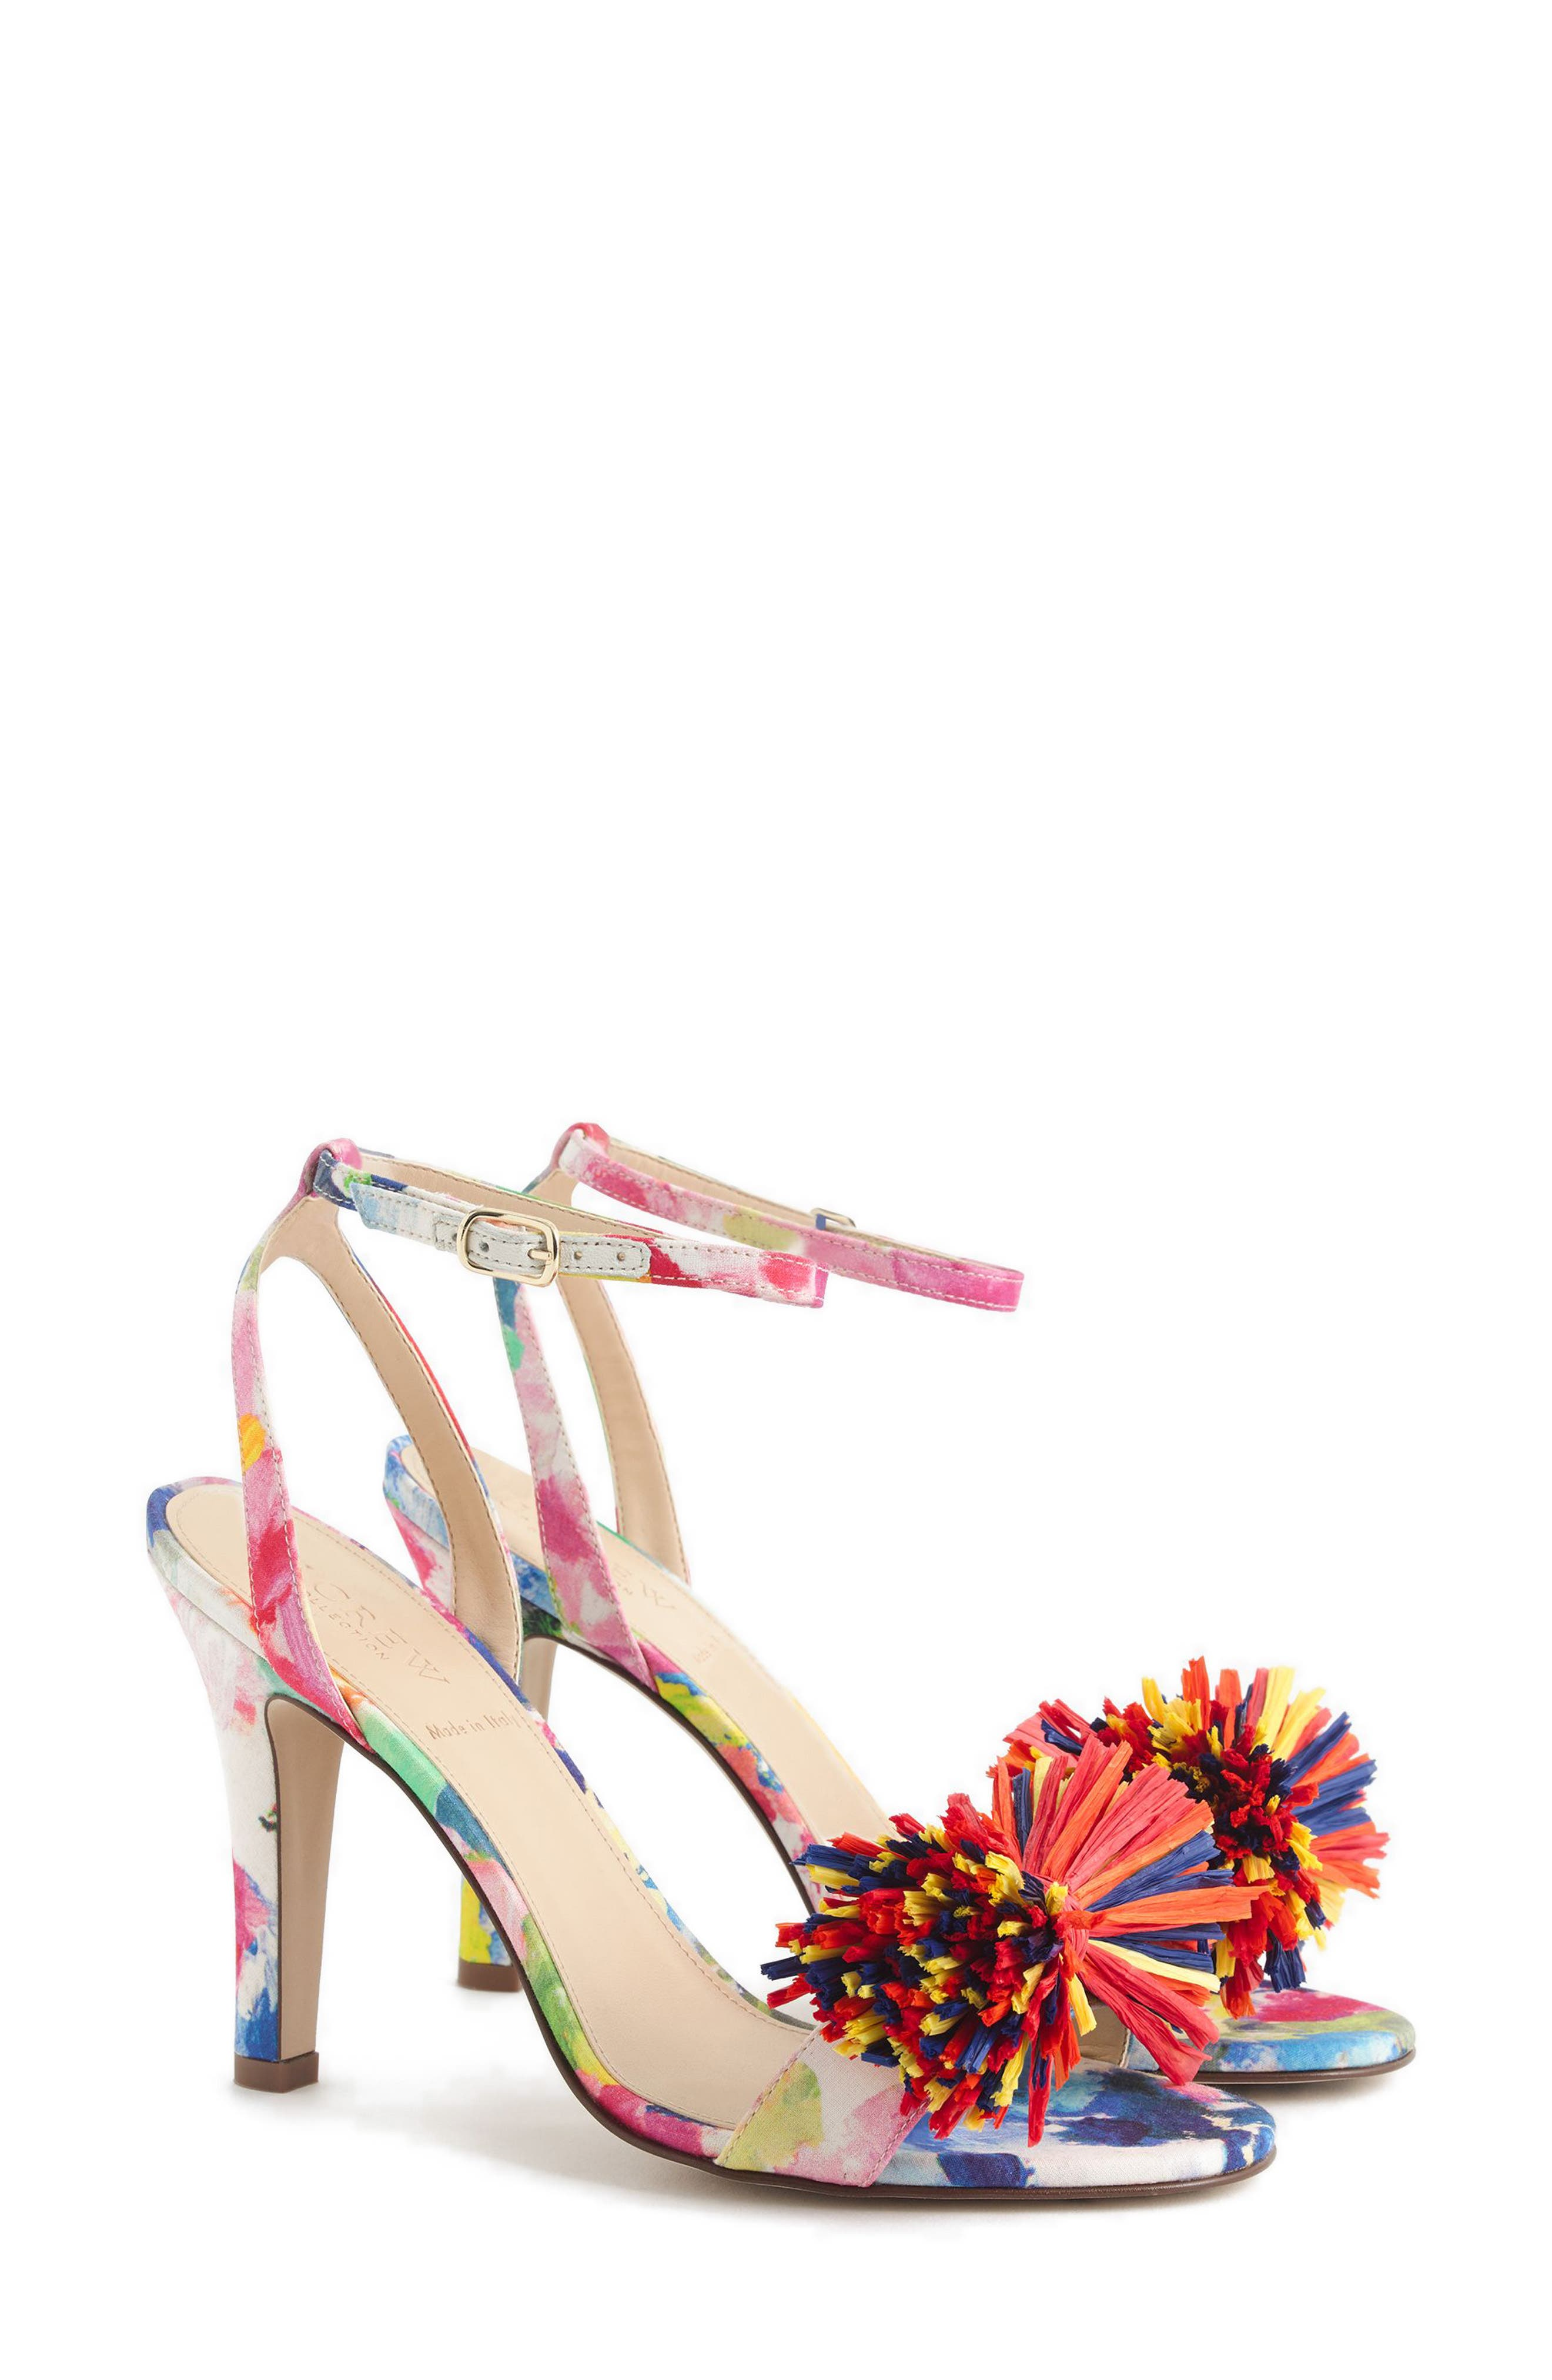 Raffia Bow Strappy Sandal,                             Main thumbnail 1, color,                             Bouquet Multi Fabric